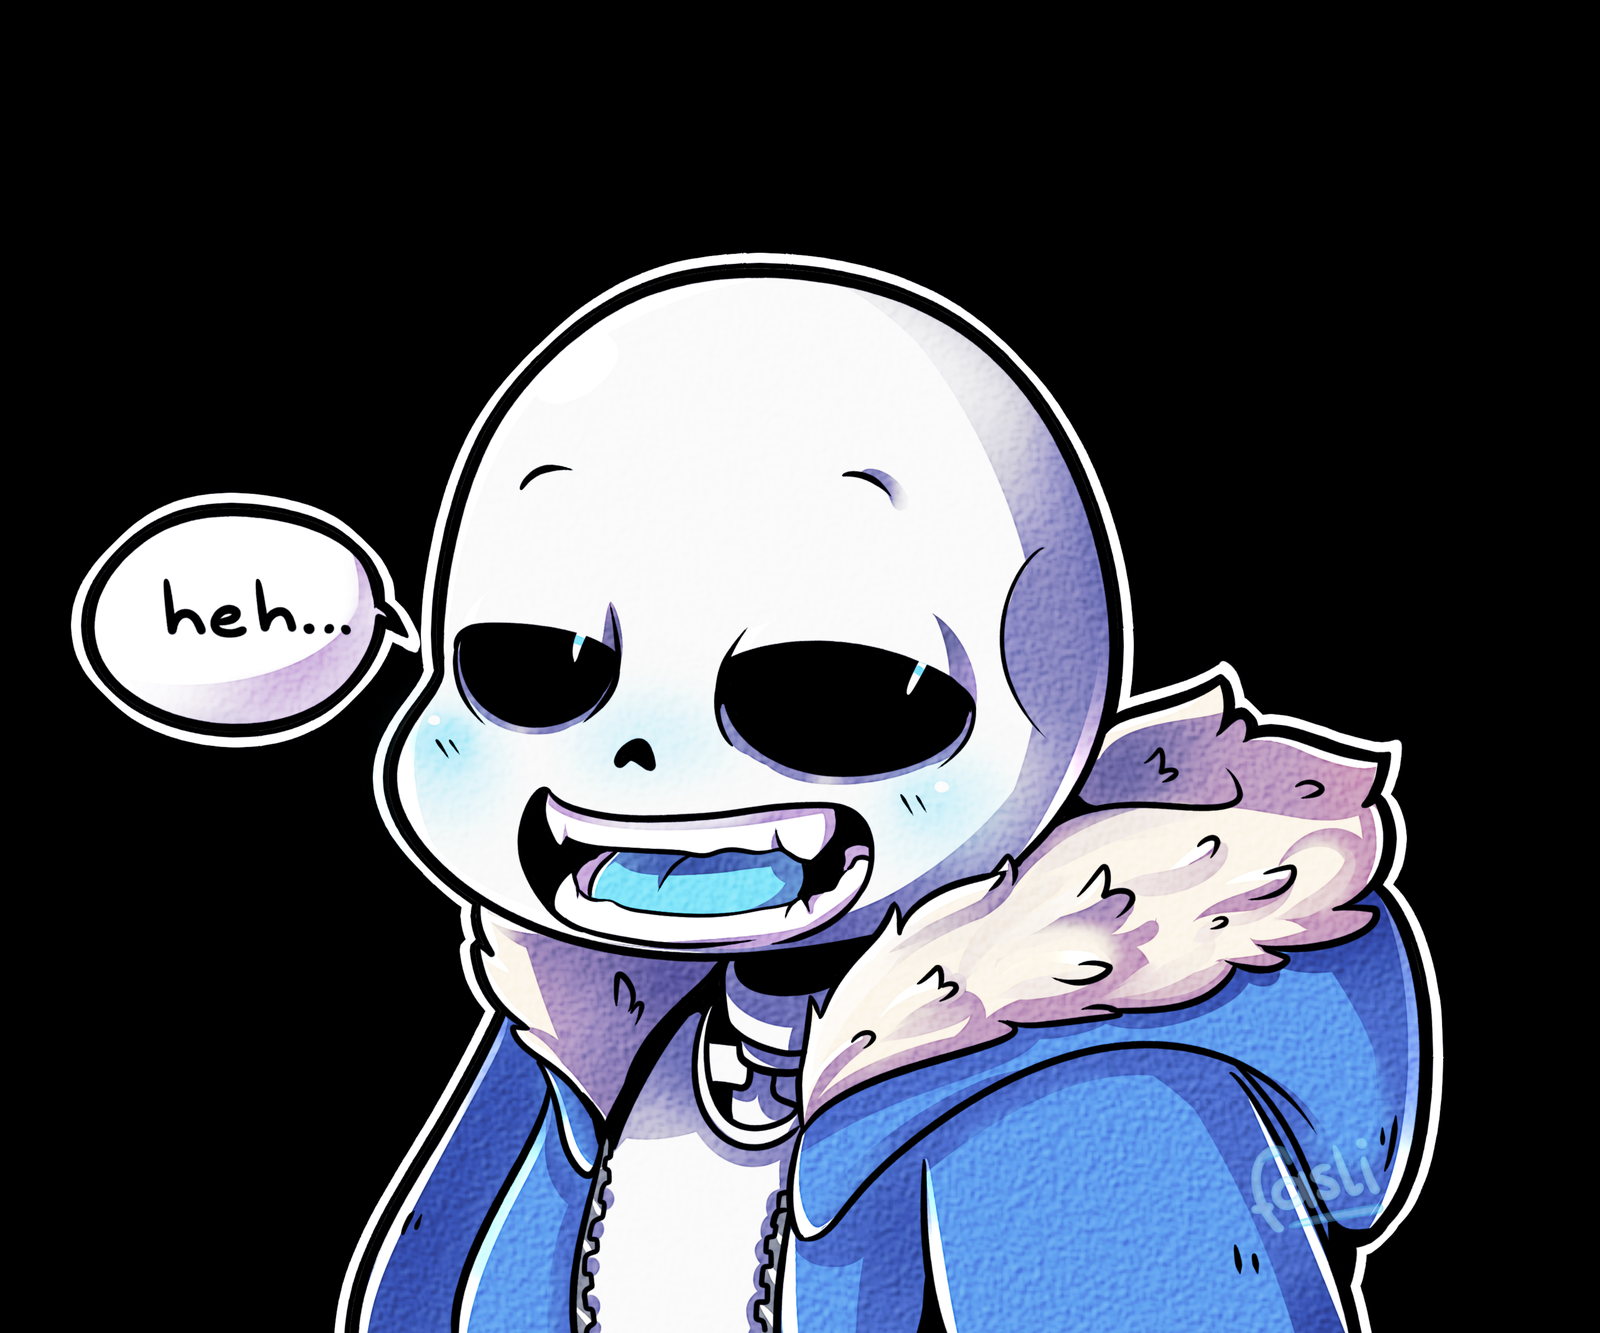 Sup Kiddo.. I am the master of HUMERUS Puns.. Speaking of puns, what do you call a Skeleton who stayed out in the snow all night?